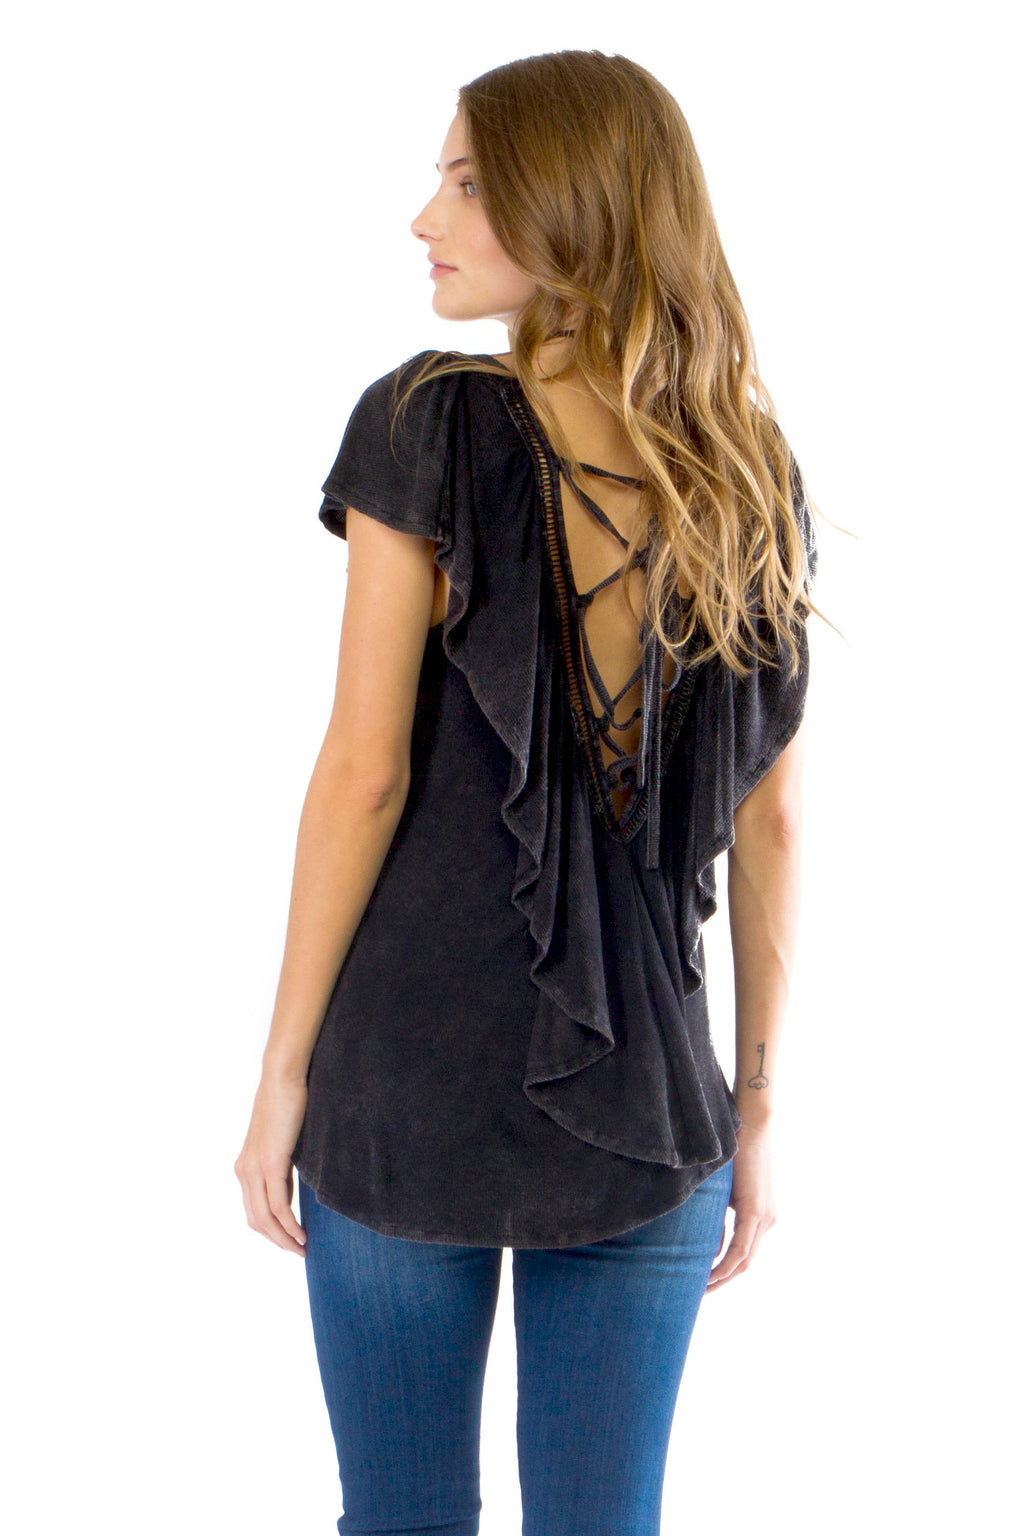 W17-278 Lace Up Back Ruffle Tee